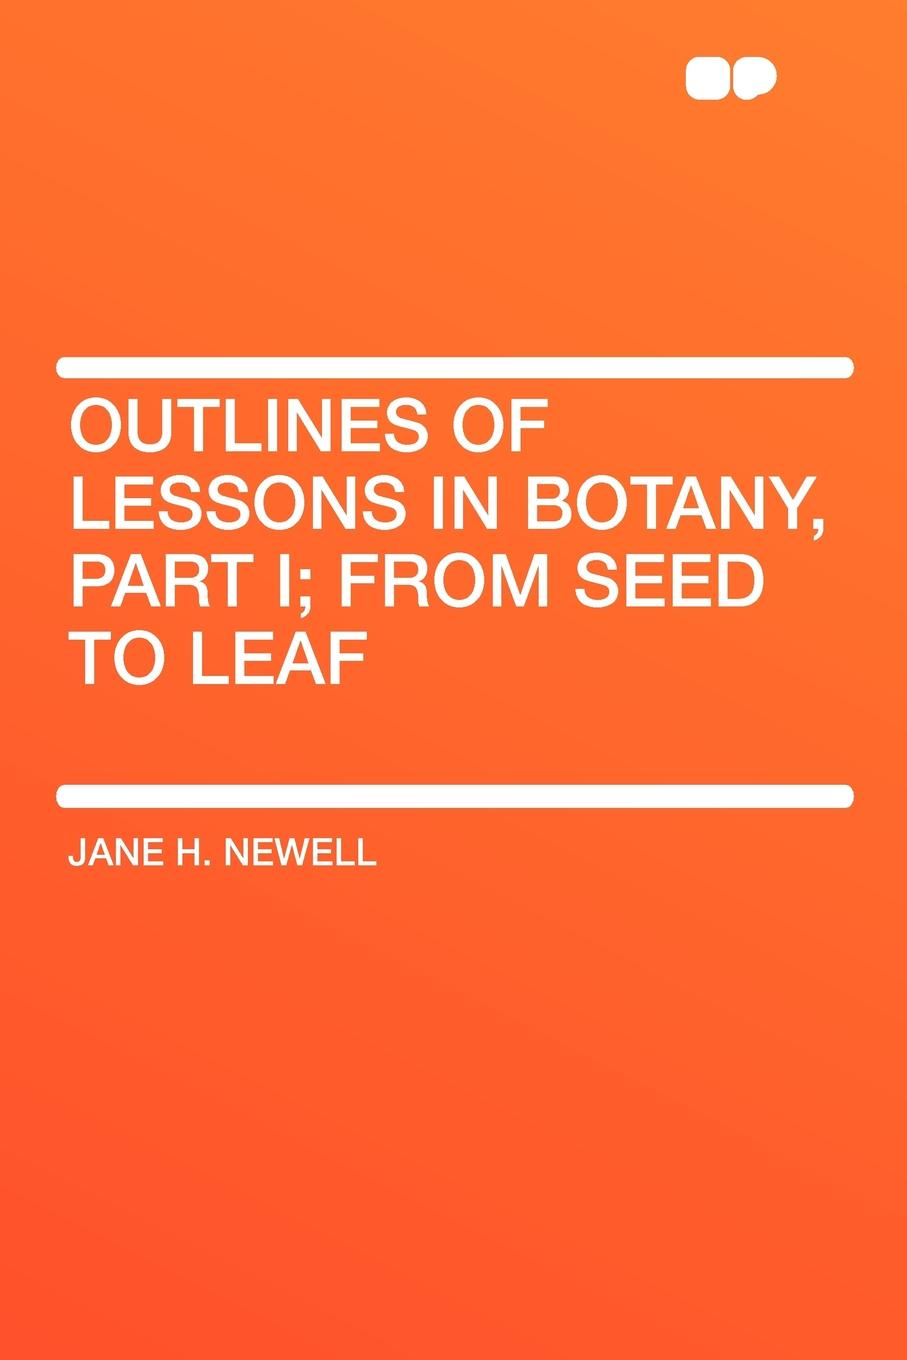 Jane H. Newell Outlines of Lessons in Botany, Part I; from Seed to Leaf